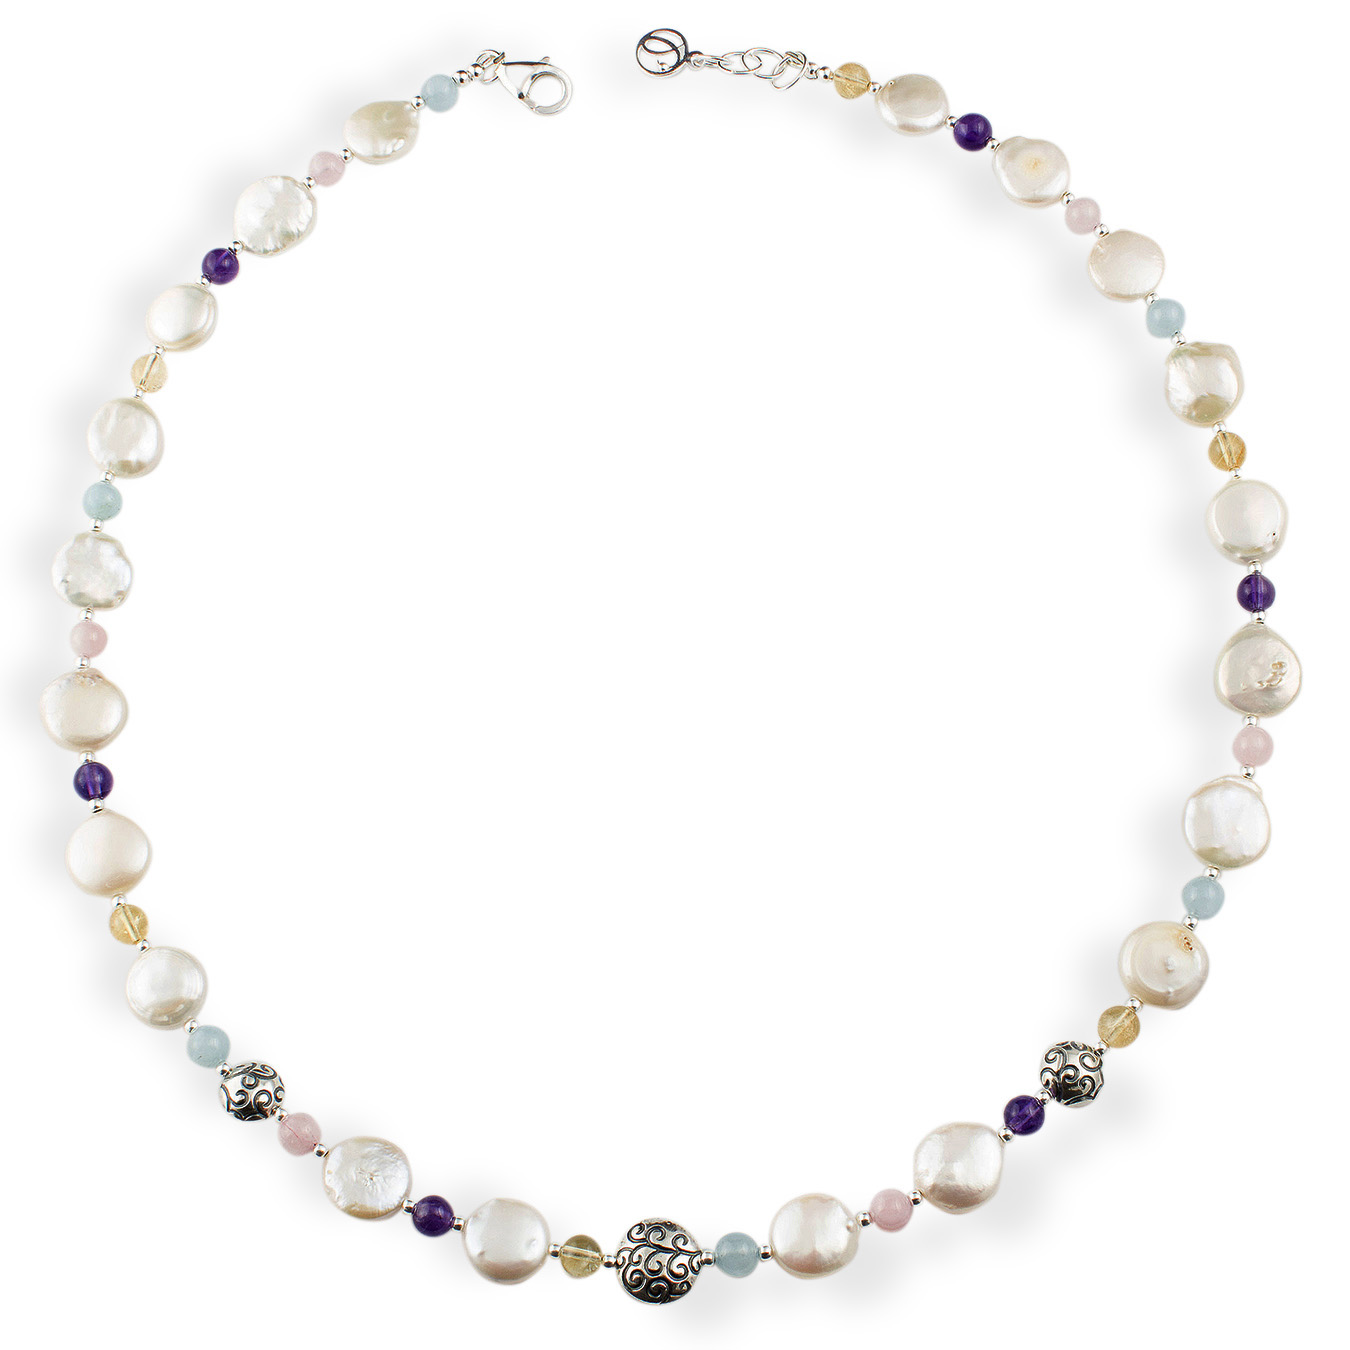 Customized necklace choice freshwater coin pearls and gemstones